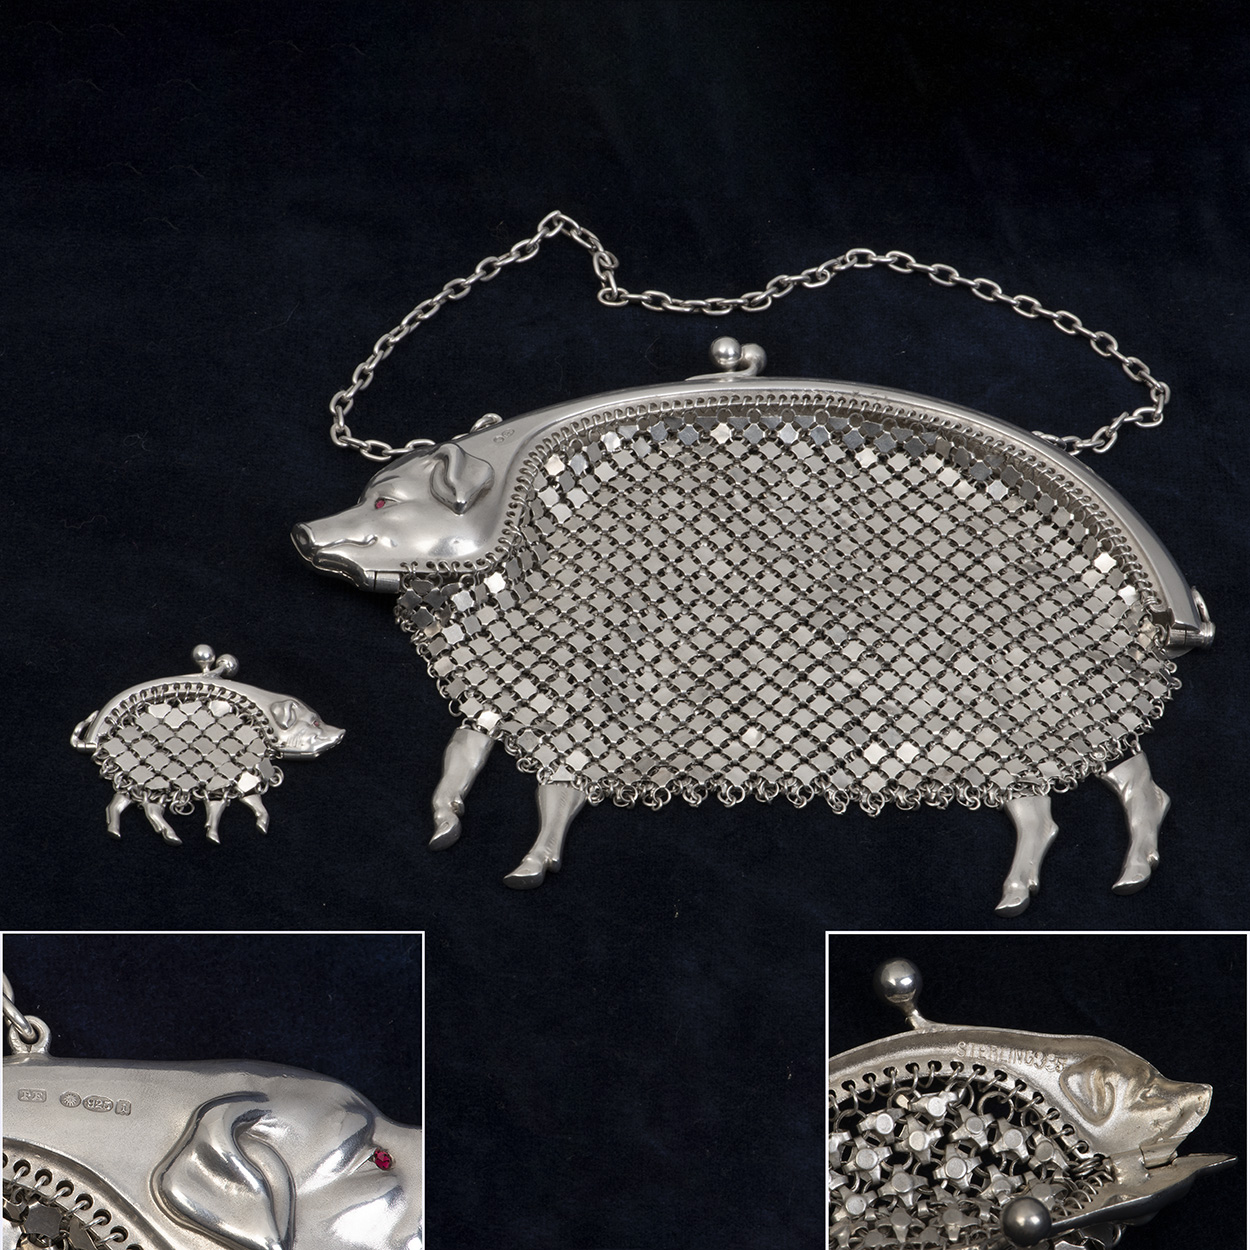 A Charming Pair Of Edwardian Silver Purses Formed As Pigs.